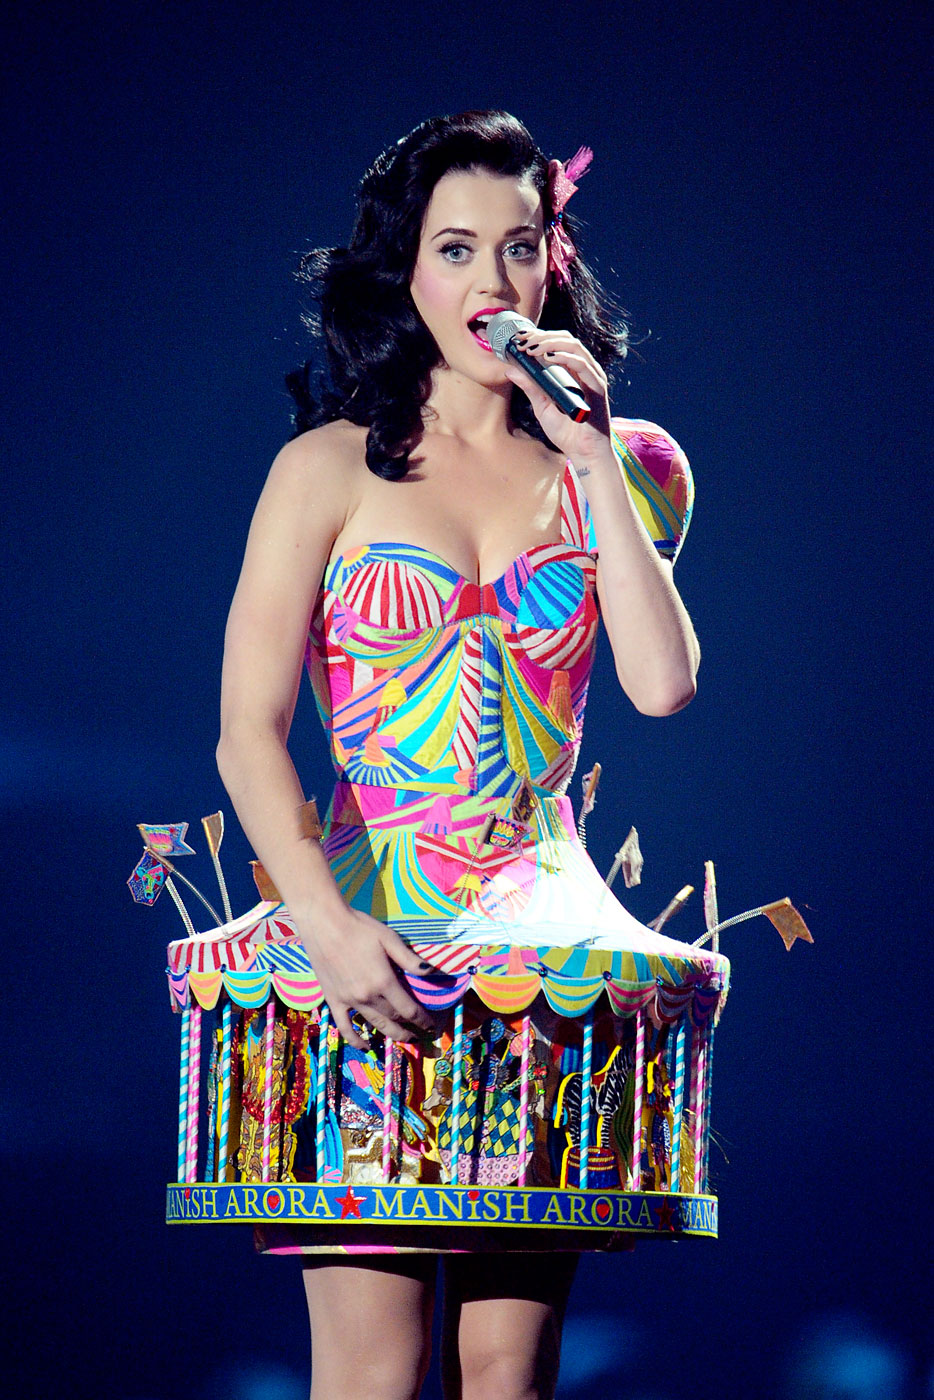 Katy Perry on stage at the 2008 MTV Europe Music Awards in Liverpool, UK.